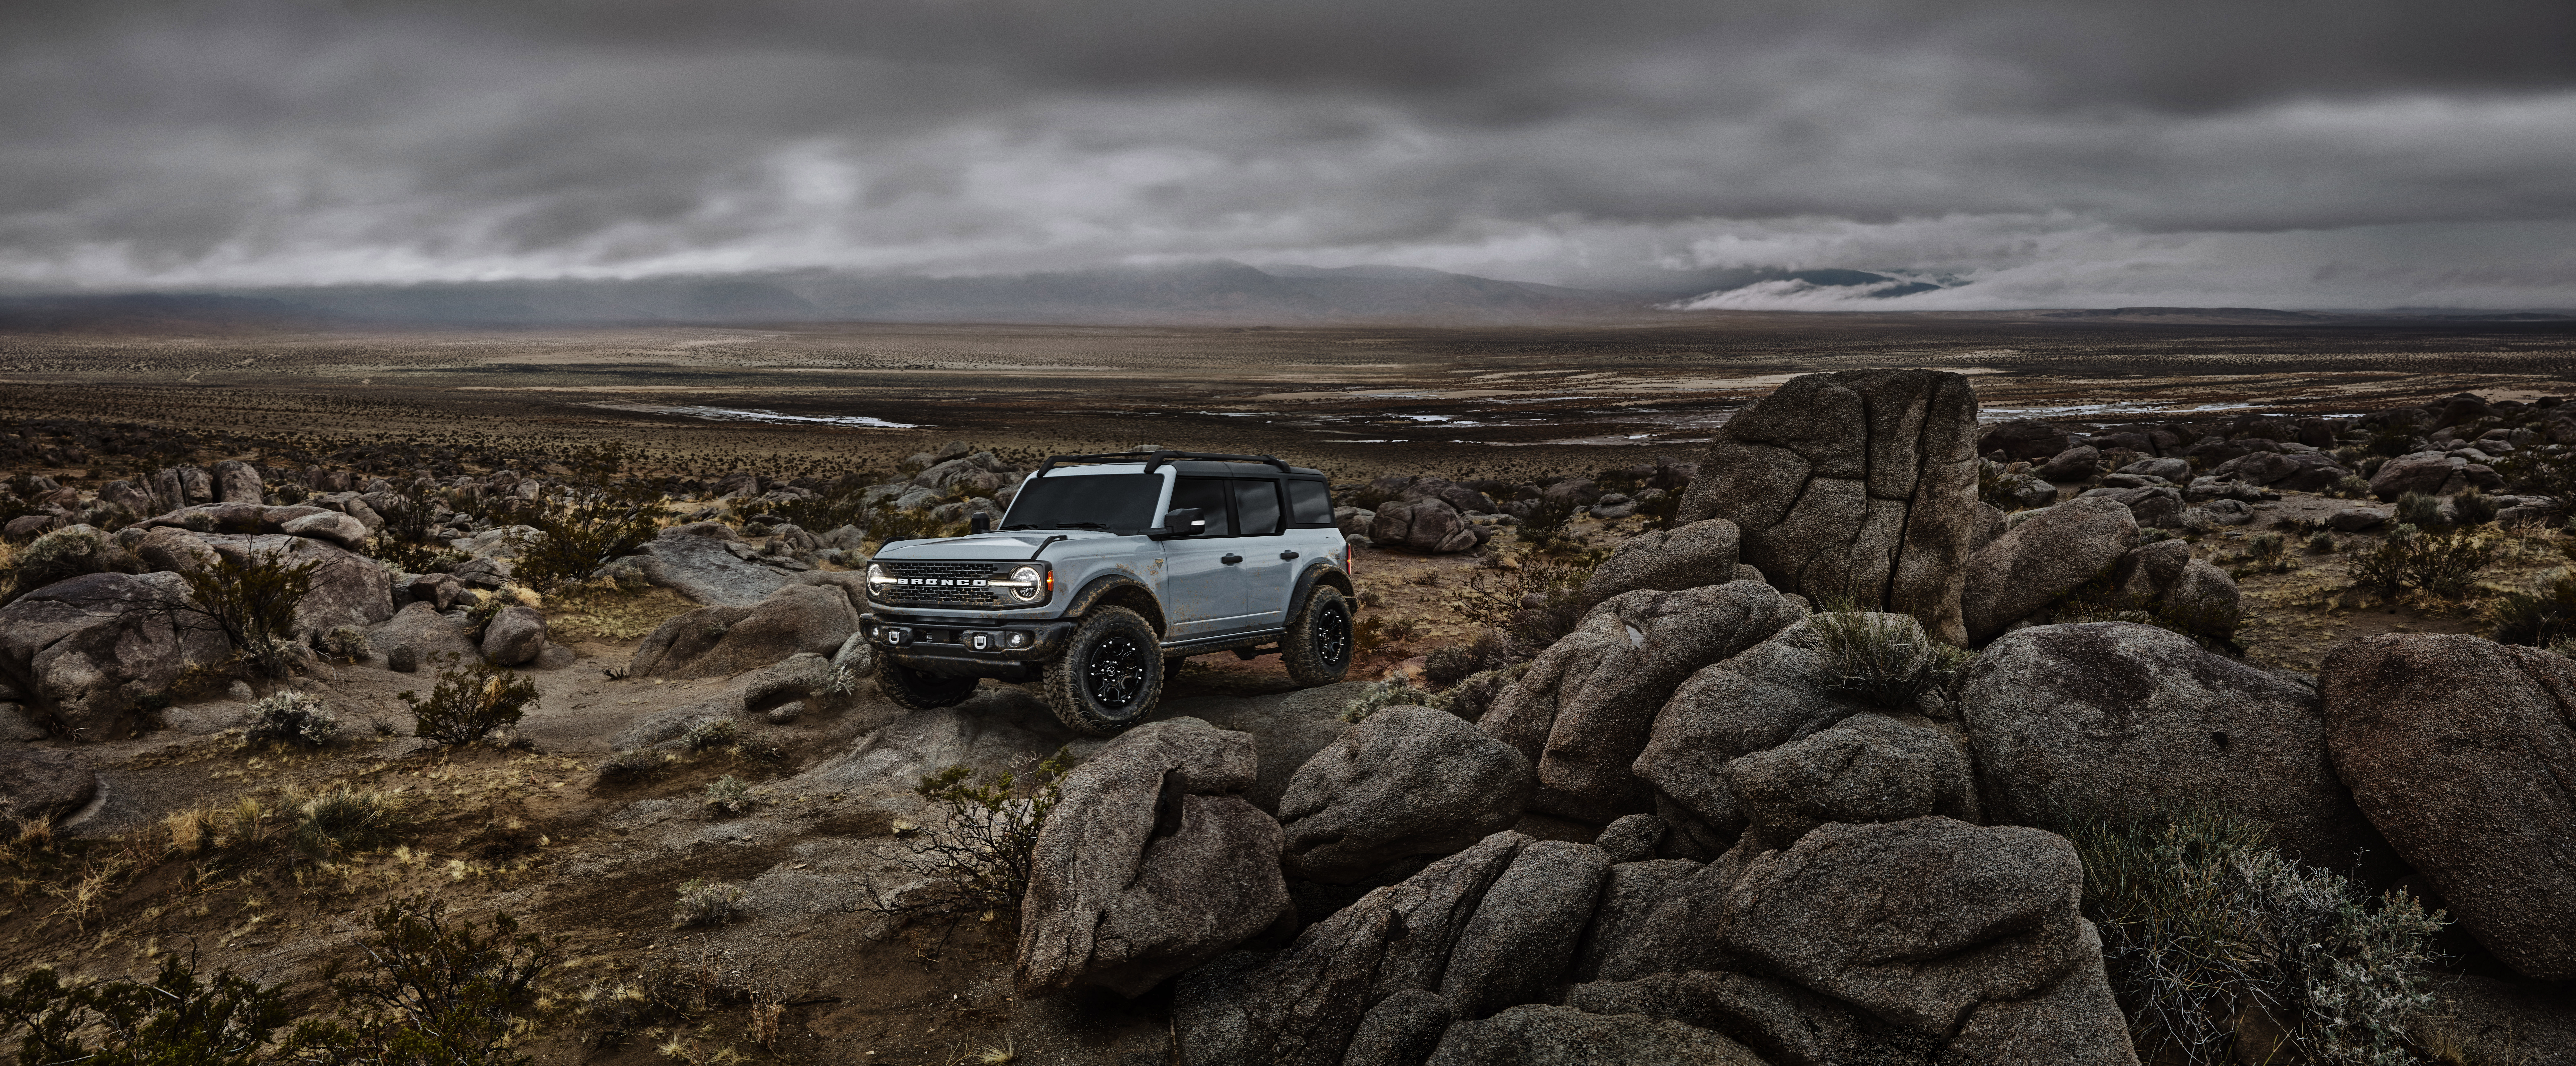 Sixth-generation Ford Bronco debuts – two EcoBoost petrols, removable panels and washable interior Image #1145169